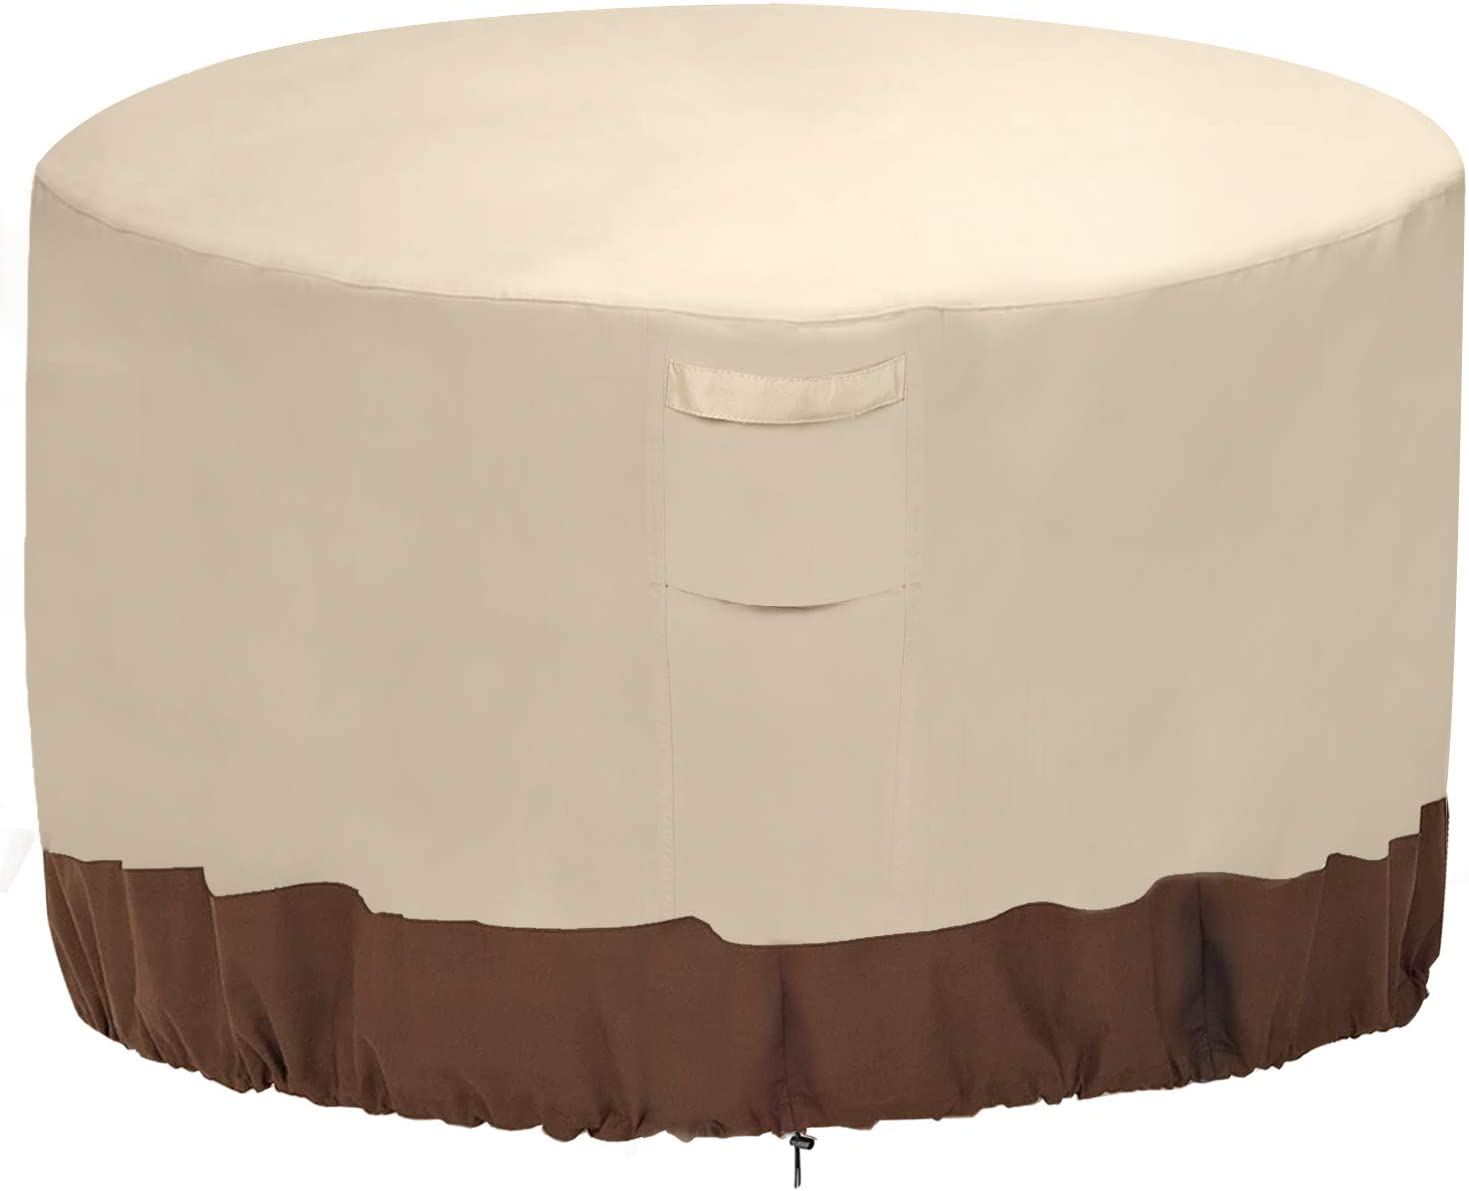 "Vailge Fire Pit Cover,100% Waterproof Round Patio Fire Bowl Cover,Outdoor Heavy Duty Gas Firepit Table Covers with Air Vent and Handle,36"" D x 20"" H,Beige & Brown"